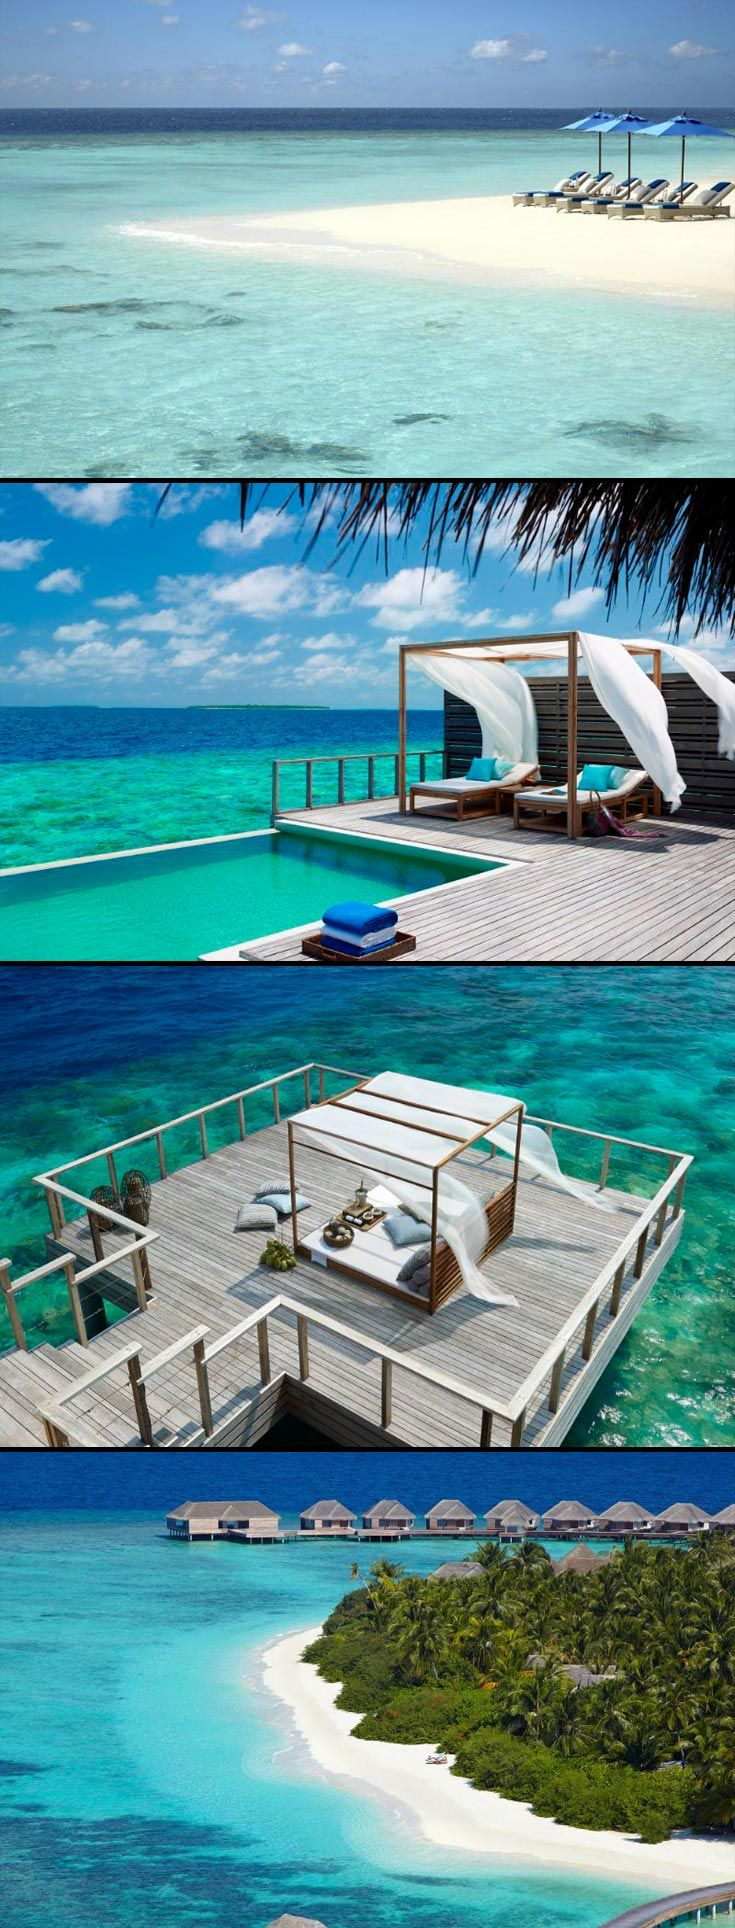 Dusit Thani ~ Maldives  Book your desire hotel in reasonable price. http://travelltrip.com/